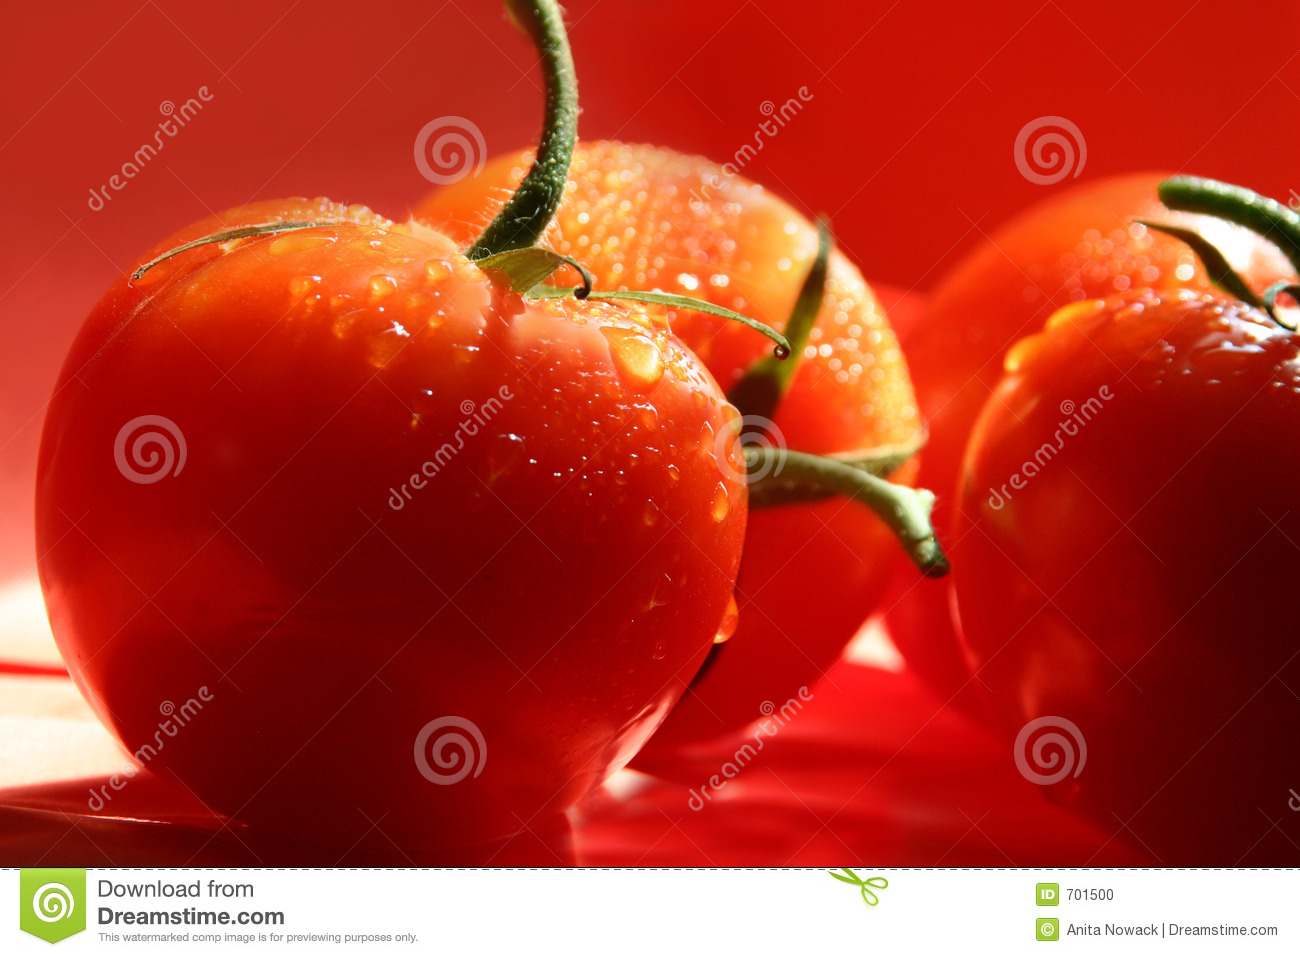 Dripping red tomatoes